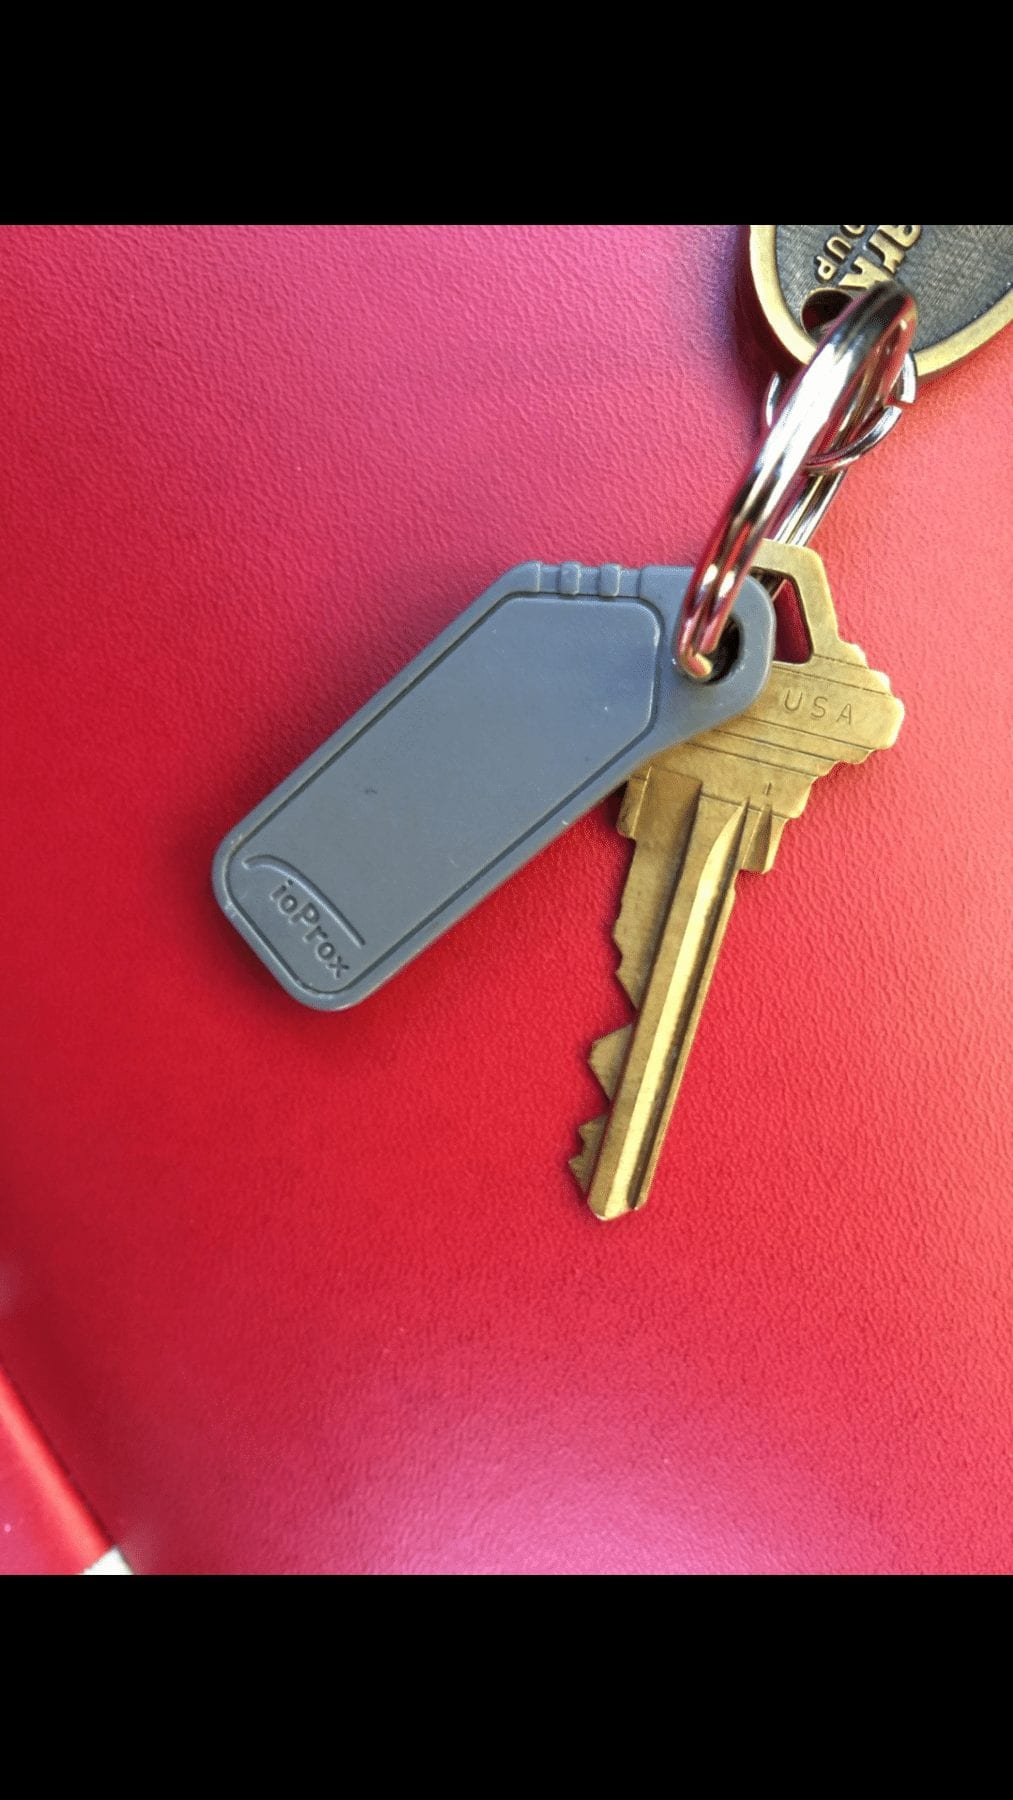 ioprox key fob copy